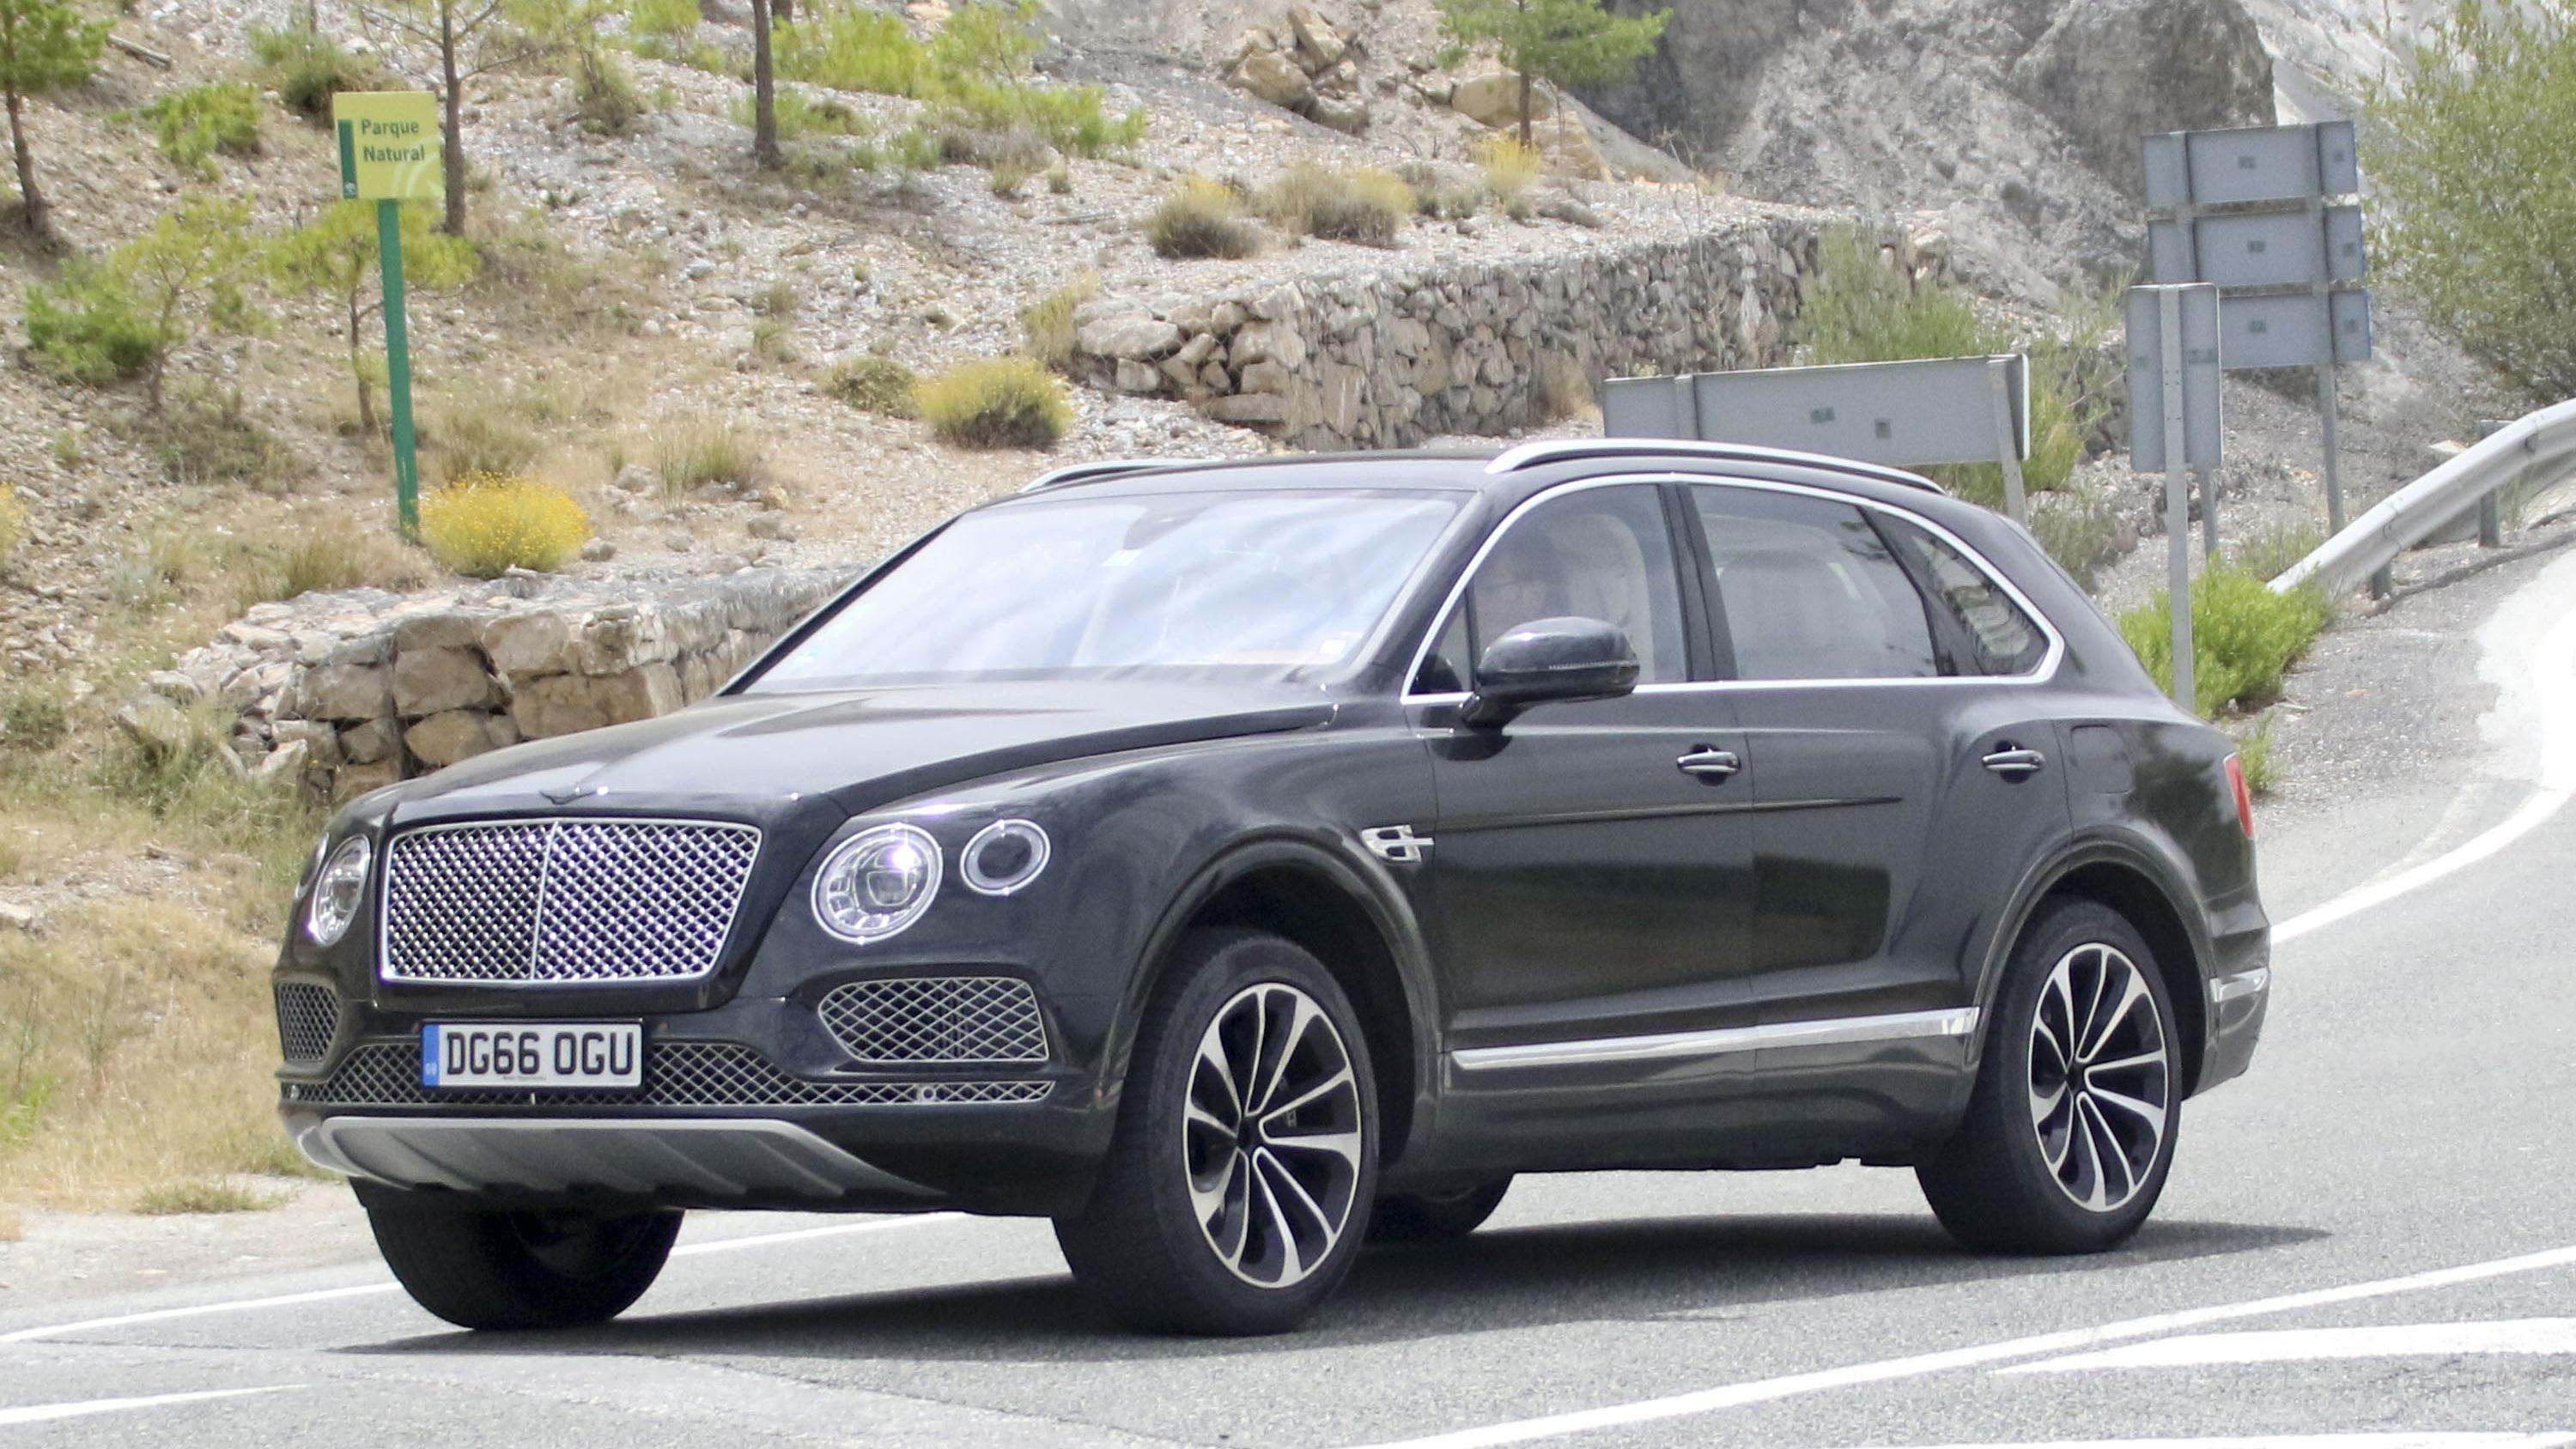 2019 Bentley Bentayga Plug-In Hybrid Pictures, Photos, Wallpapers ...